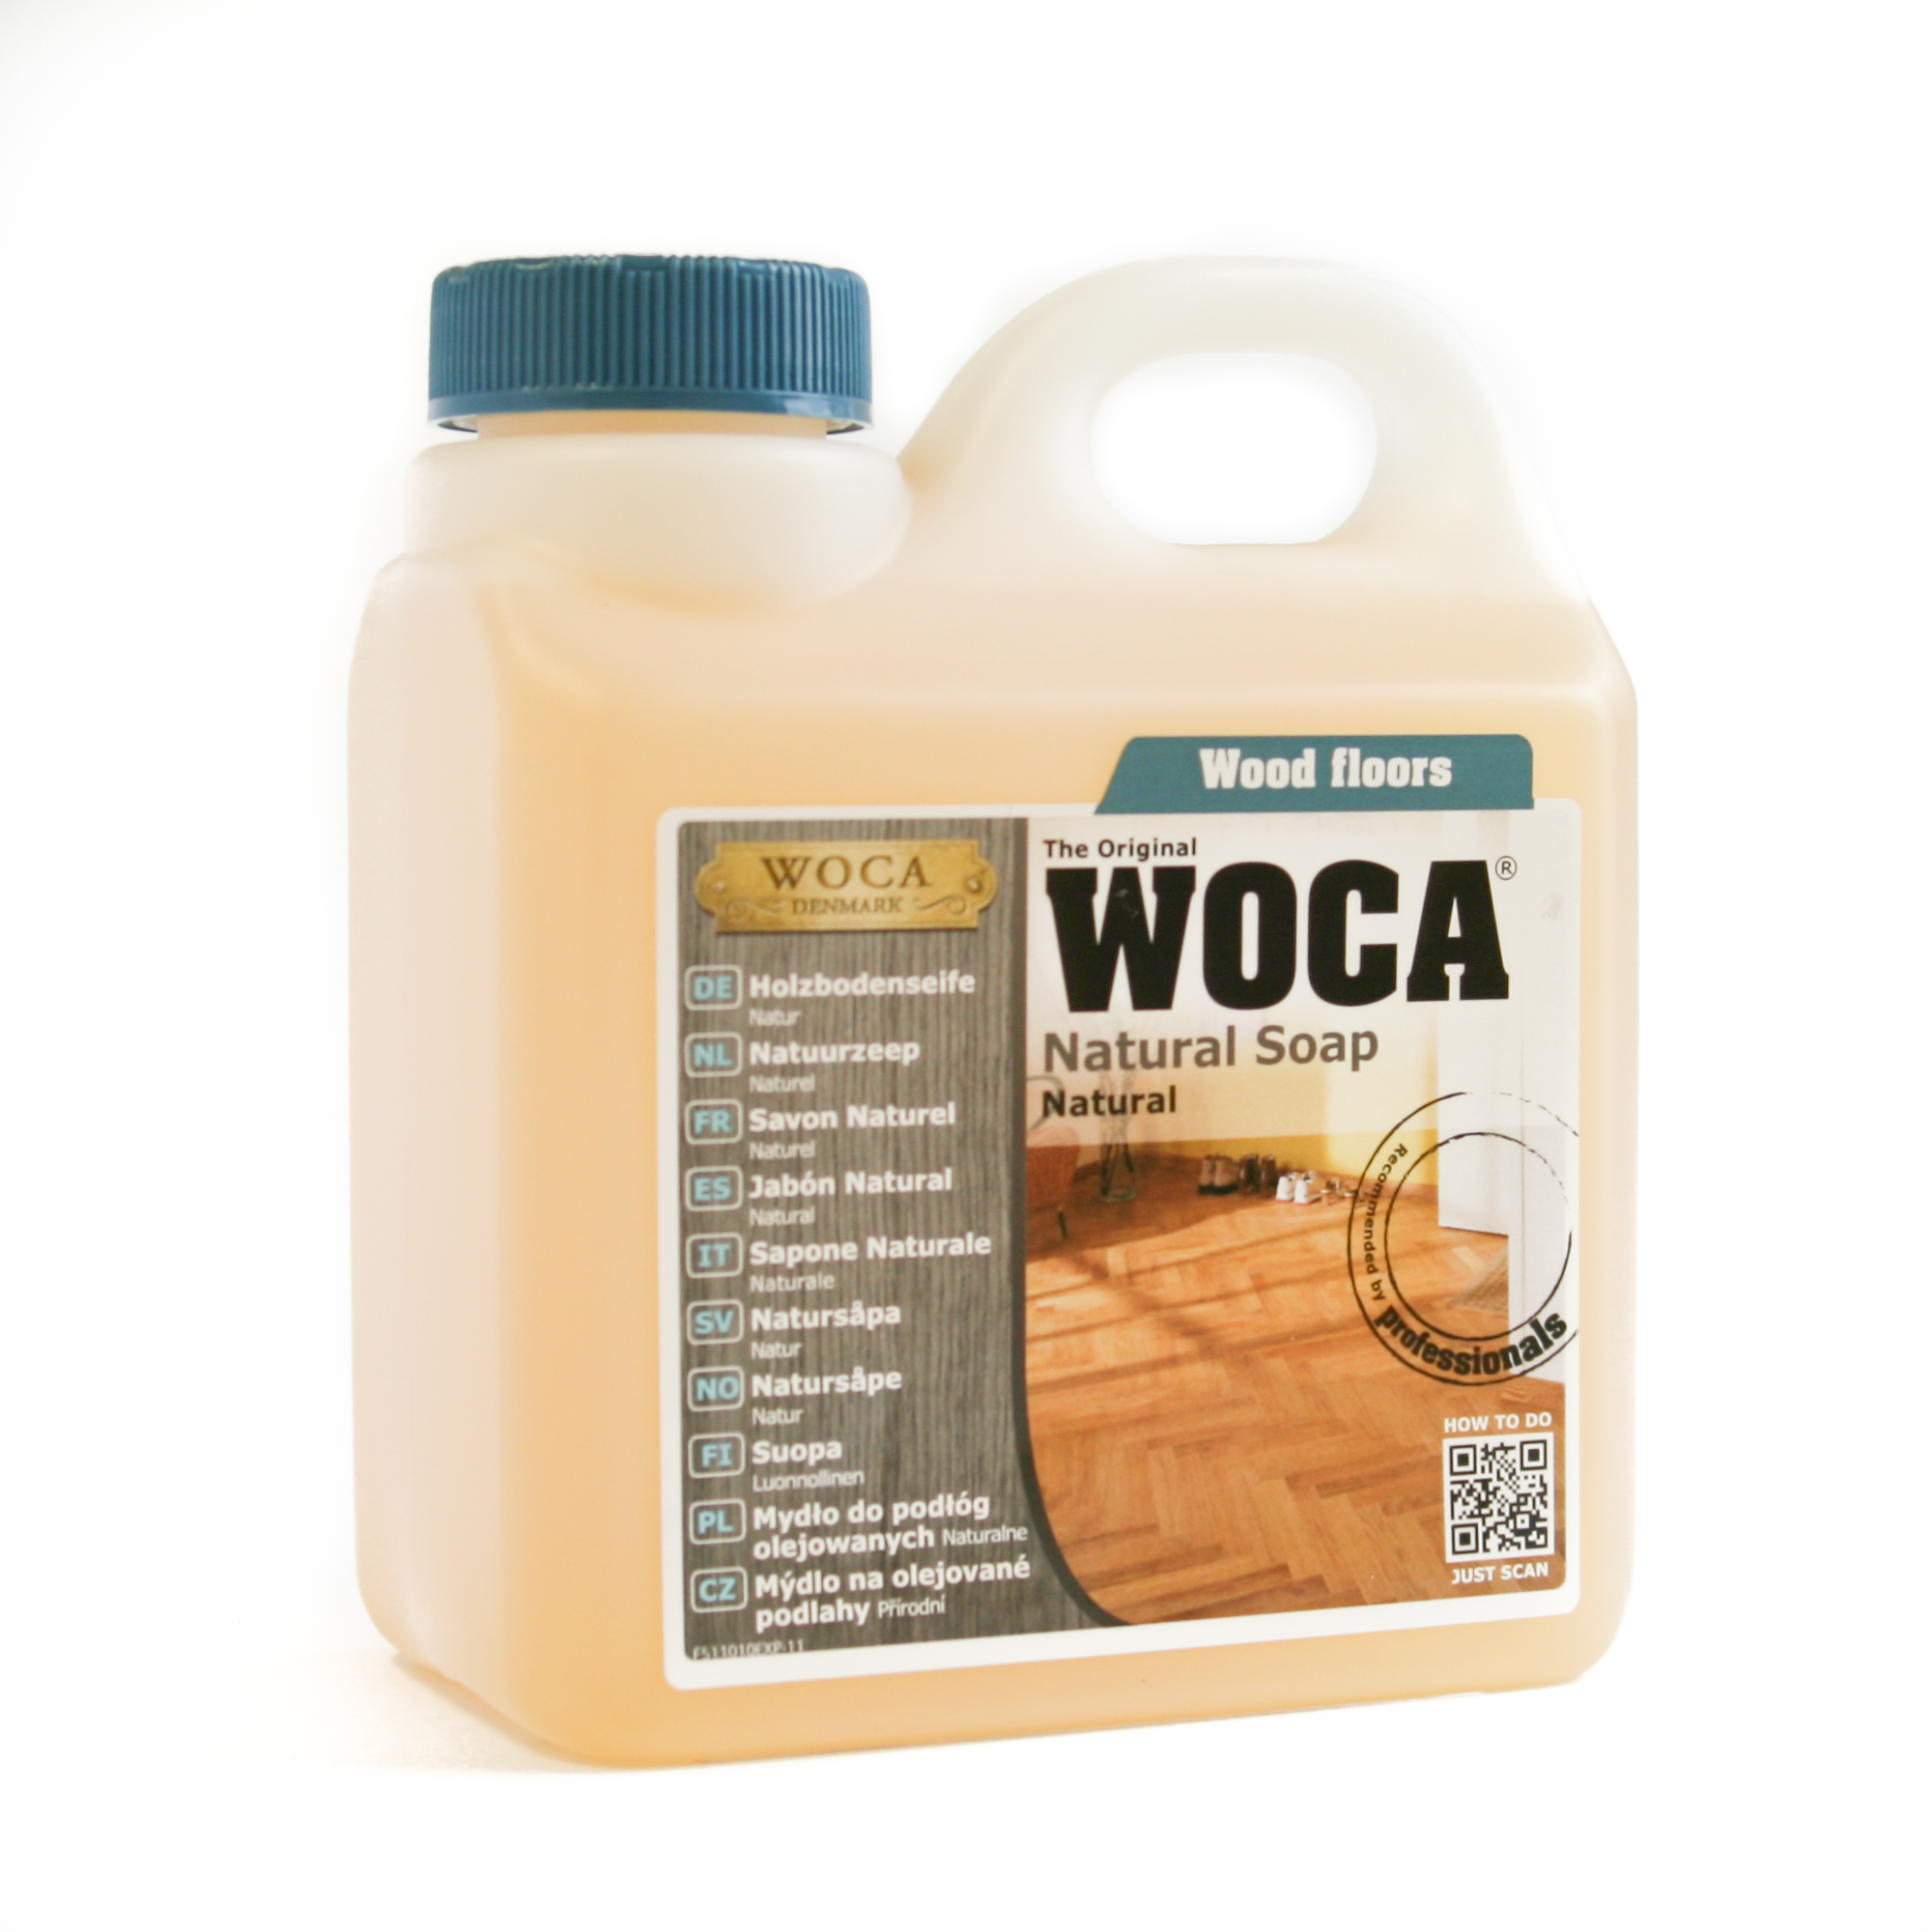 Woca Soap Natural Floor Care Unique Wood Floors